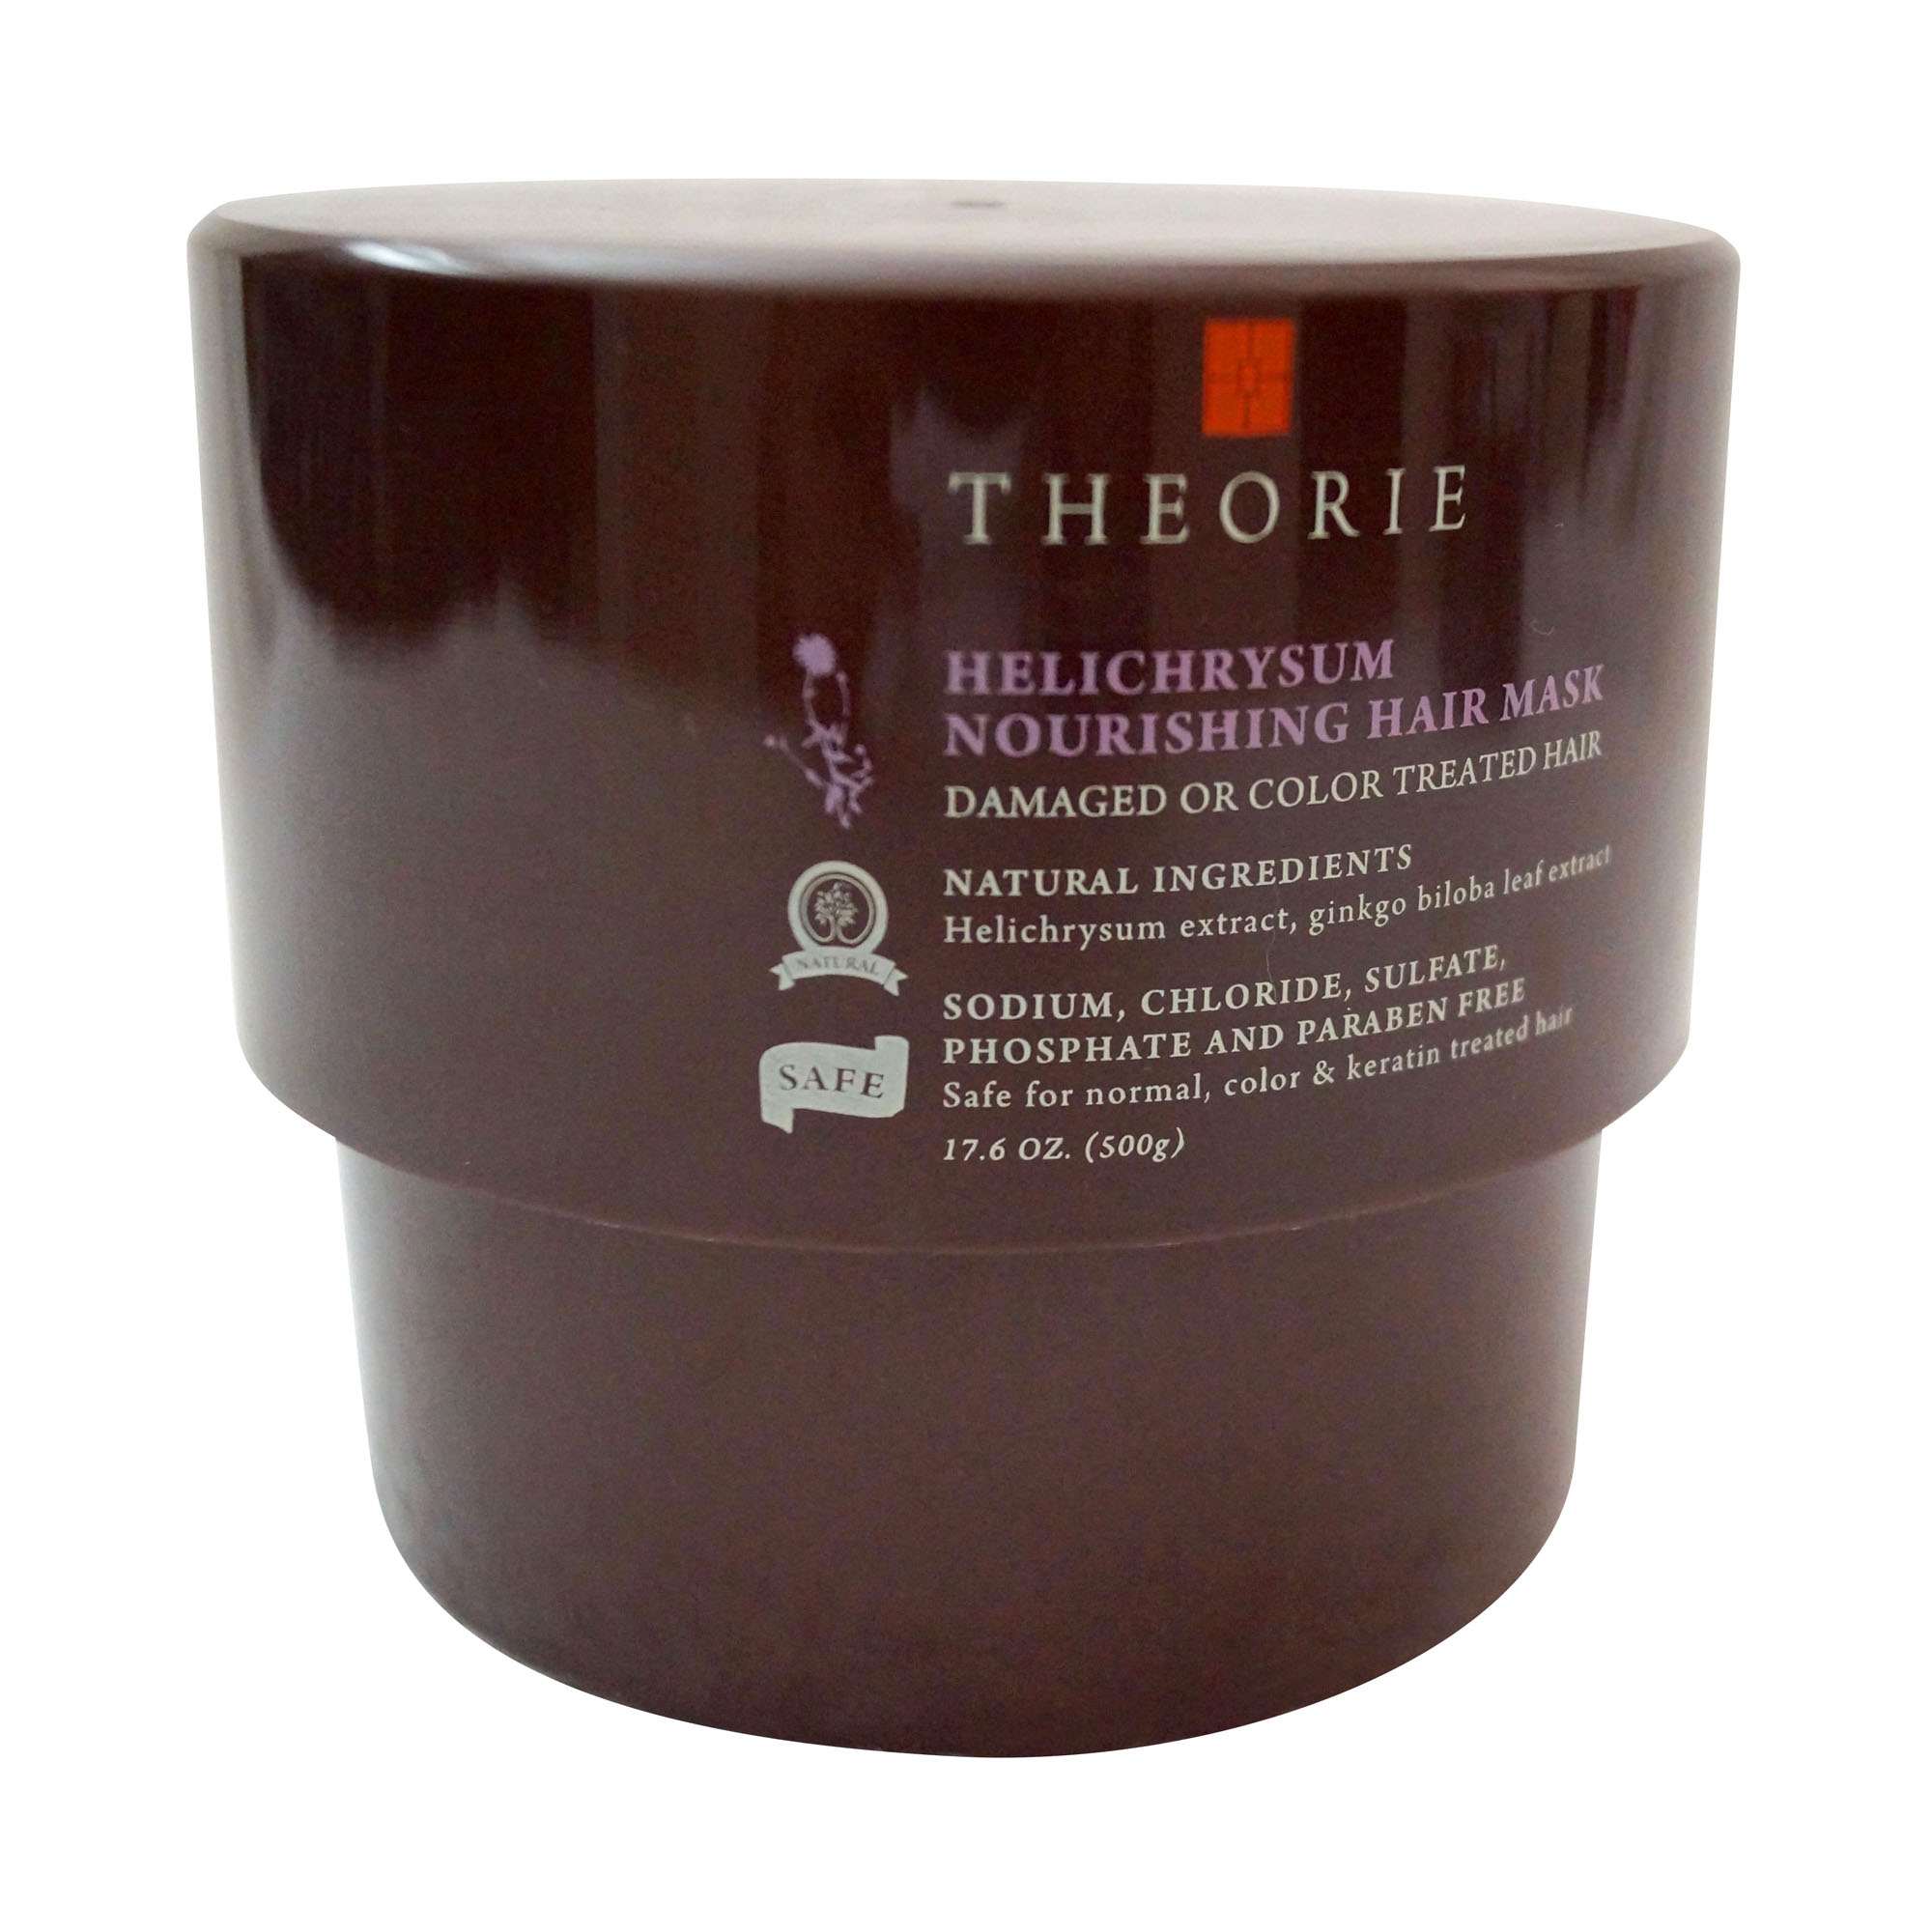 Theorie Helichrysum Nourishing Hair Mask, 500 ml.